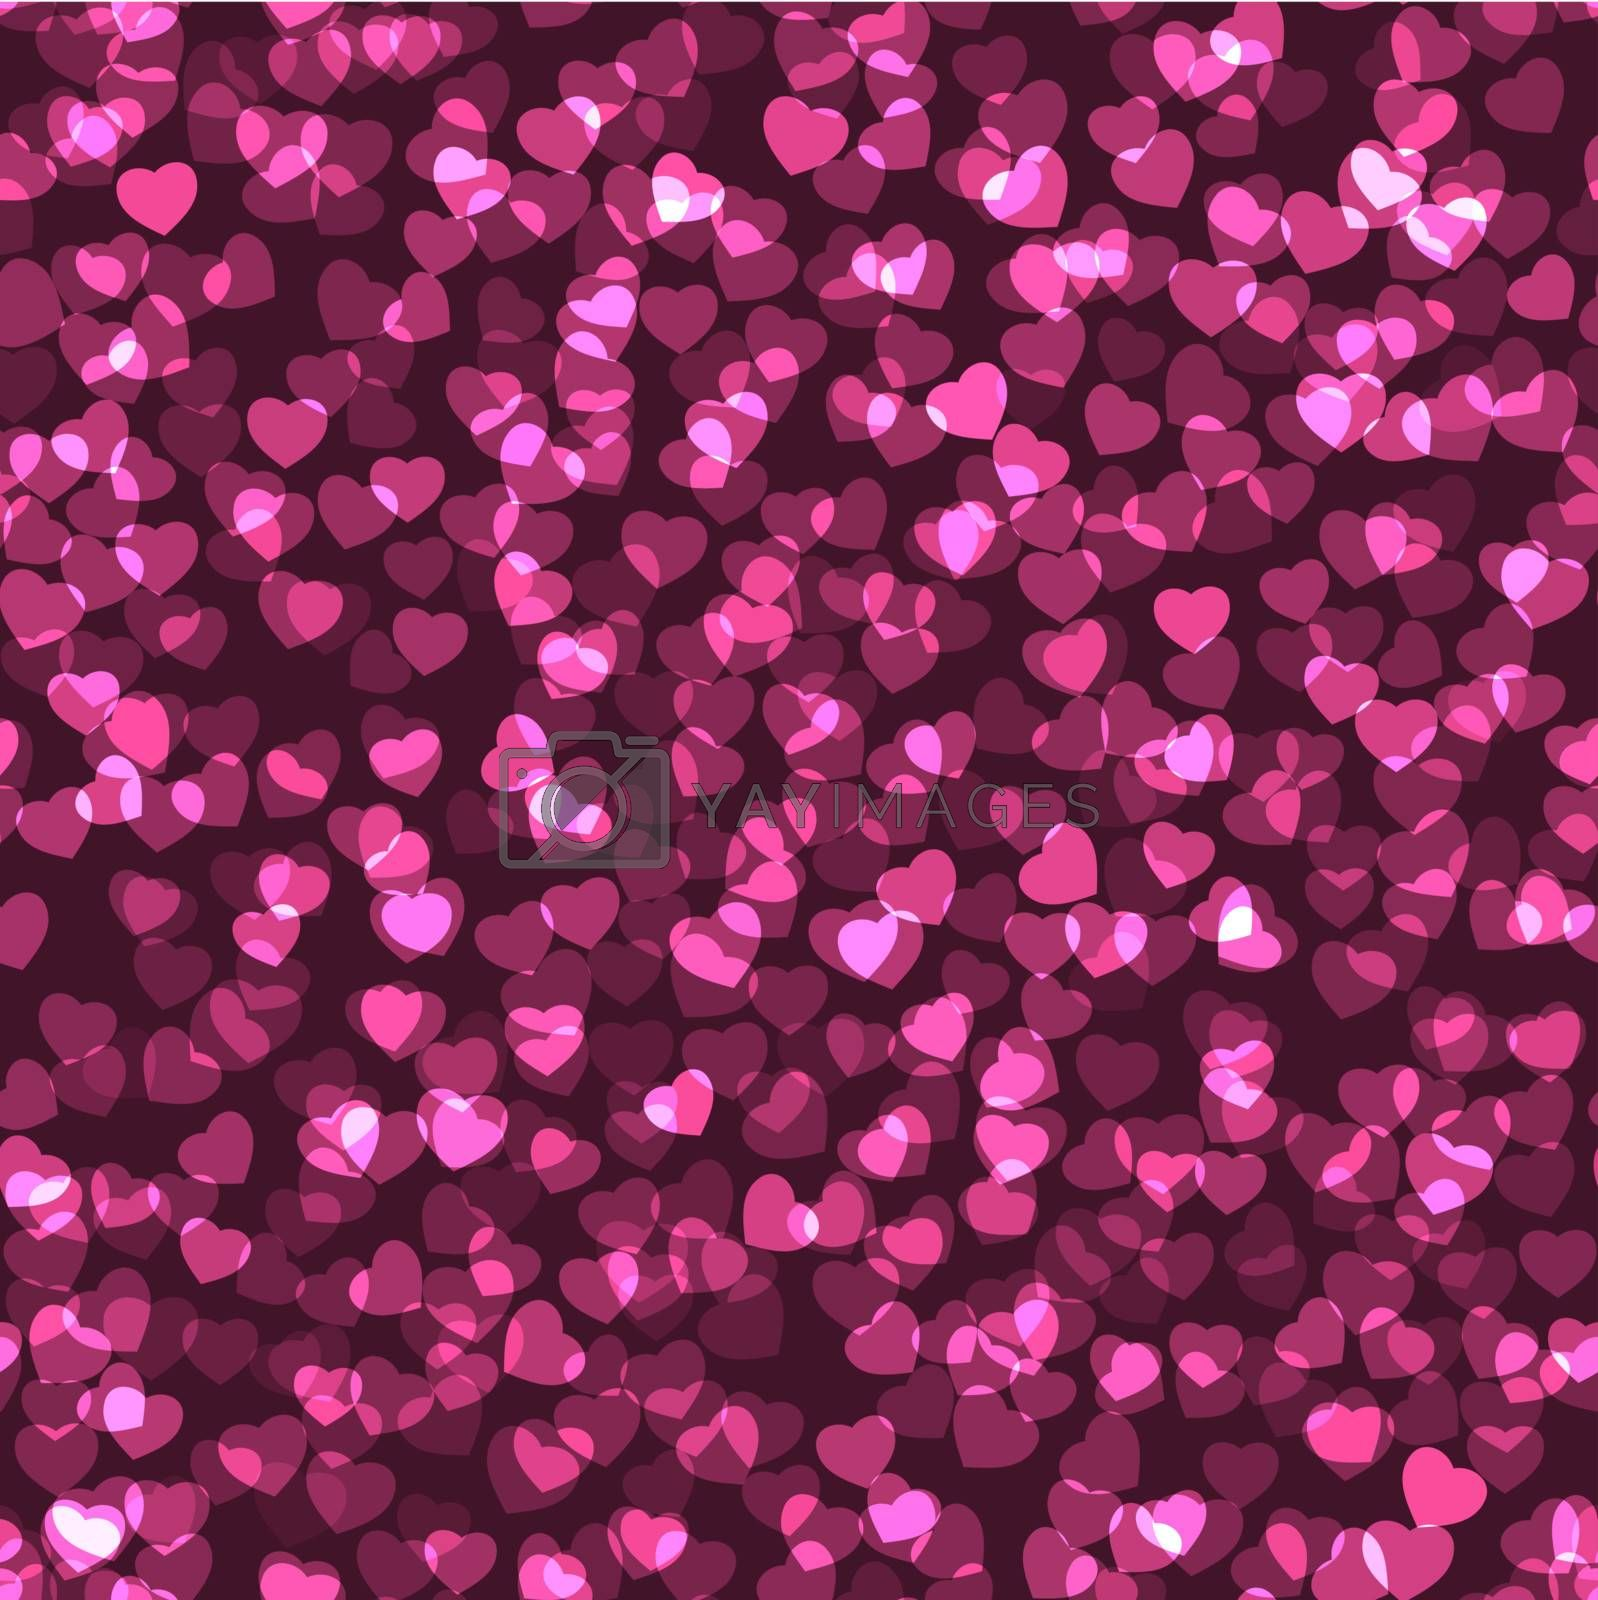 Vector seamless heart texture EPS 10 vector file included